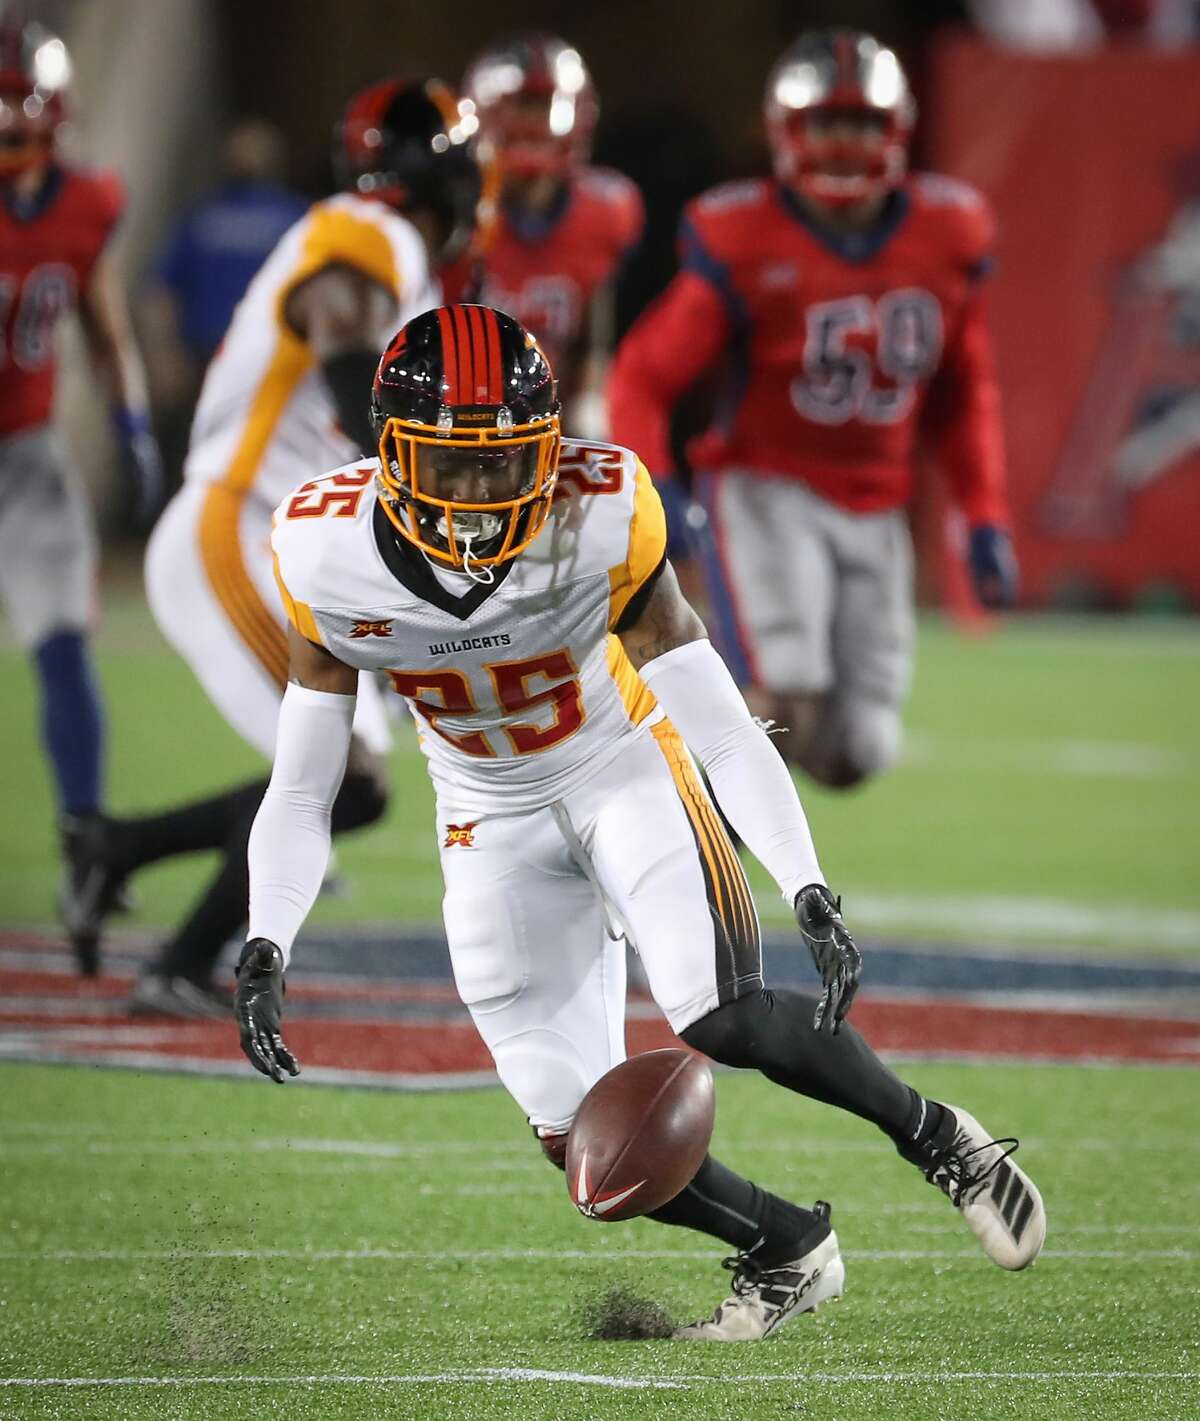 LA Wildcats cornerback Roman Tatum (25) fumbles a kick return during the fourth quarter of an XFL football game at TDECU Stadium on Saturday, Feb. 8, 2020, in Houston.